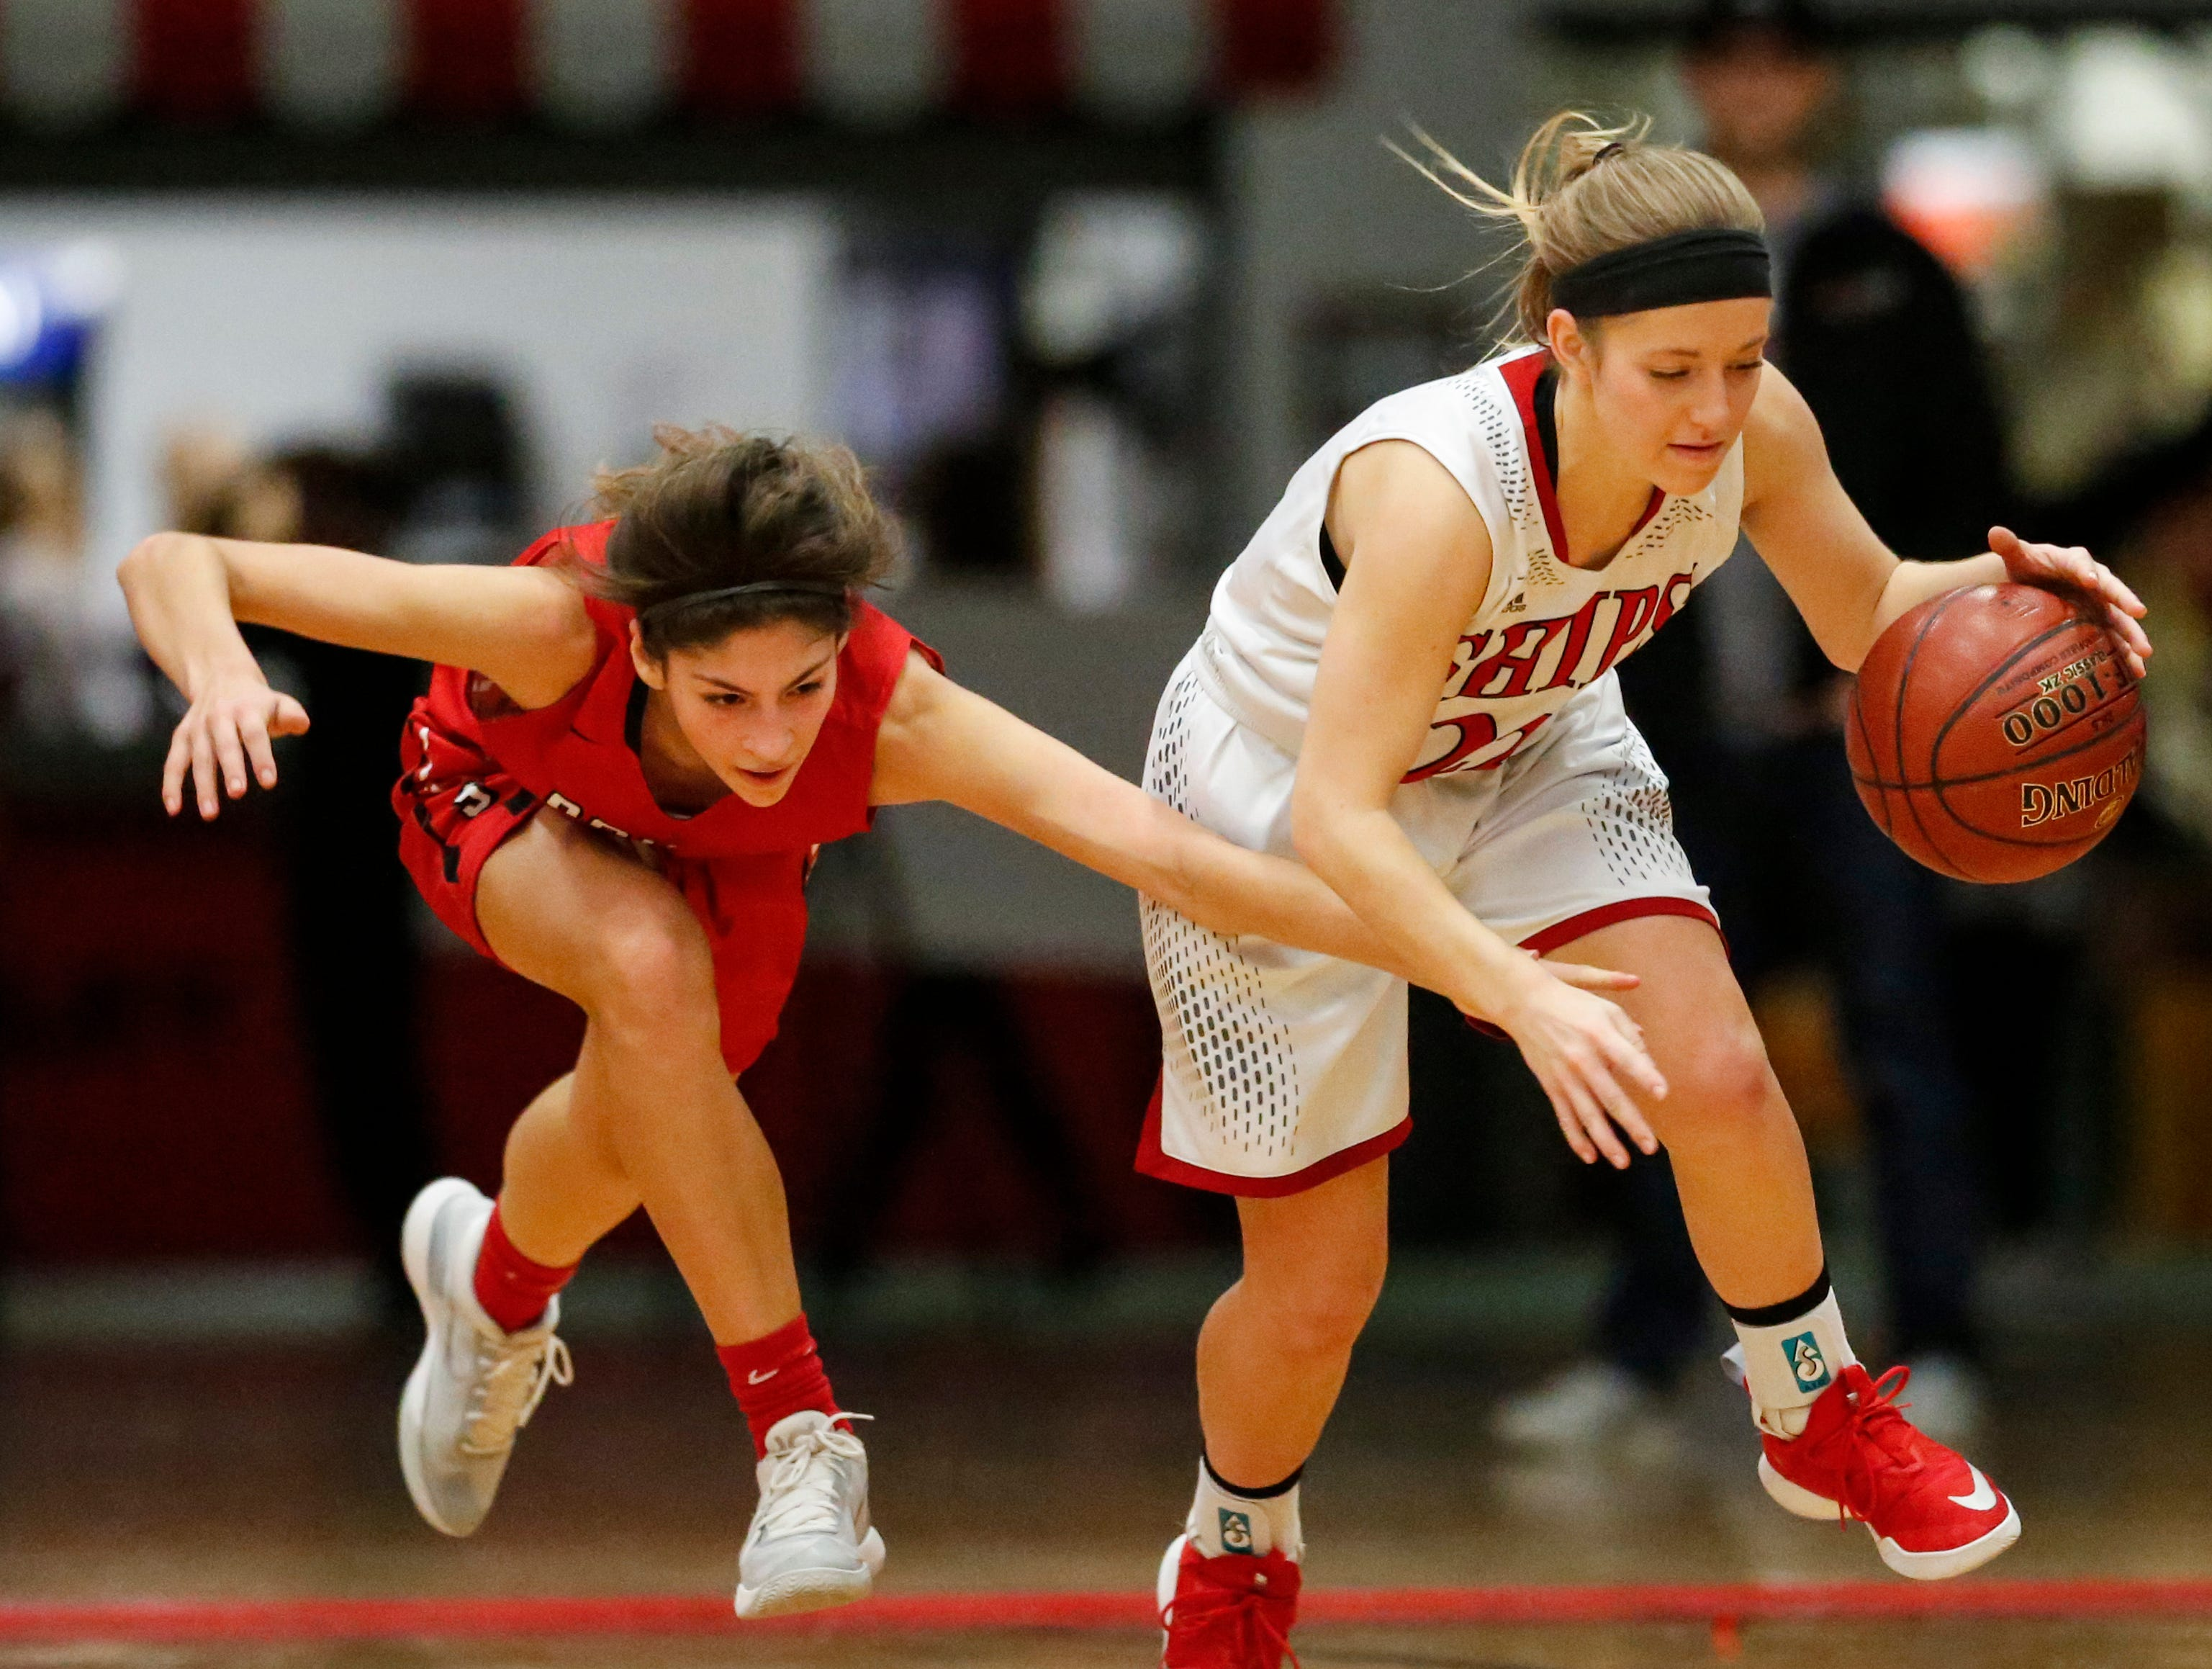 Manitowoc Lincoln's Carley Zimmer (22) steals the ball from Sheboygan South's Maddie Ognacevic (4) during an FRCC matchup at Manitowoc Lincoln High School Friday, January 4, 2019, in Manitowoc, Wis. Joshua Clark/USA TODAY NETWORK-Wisconsin